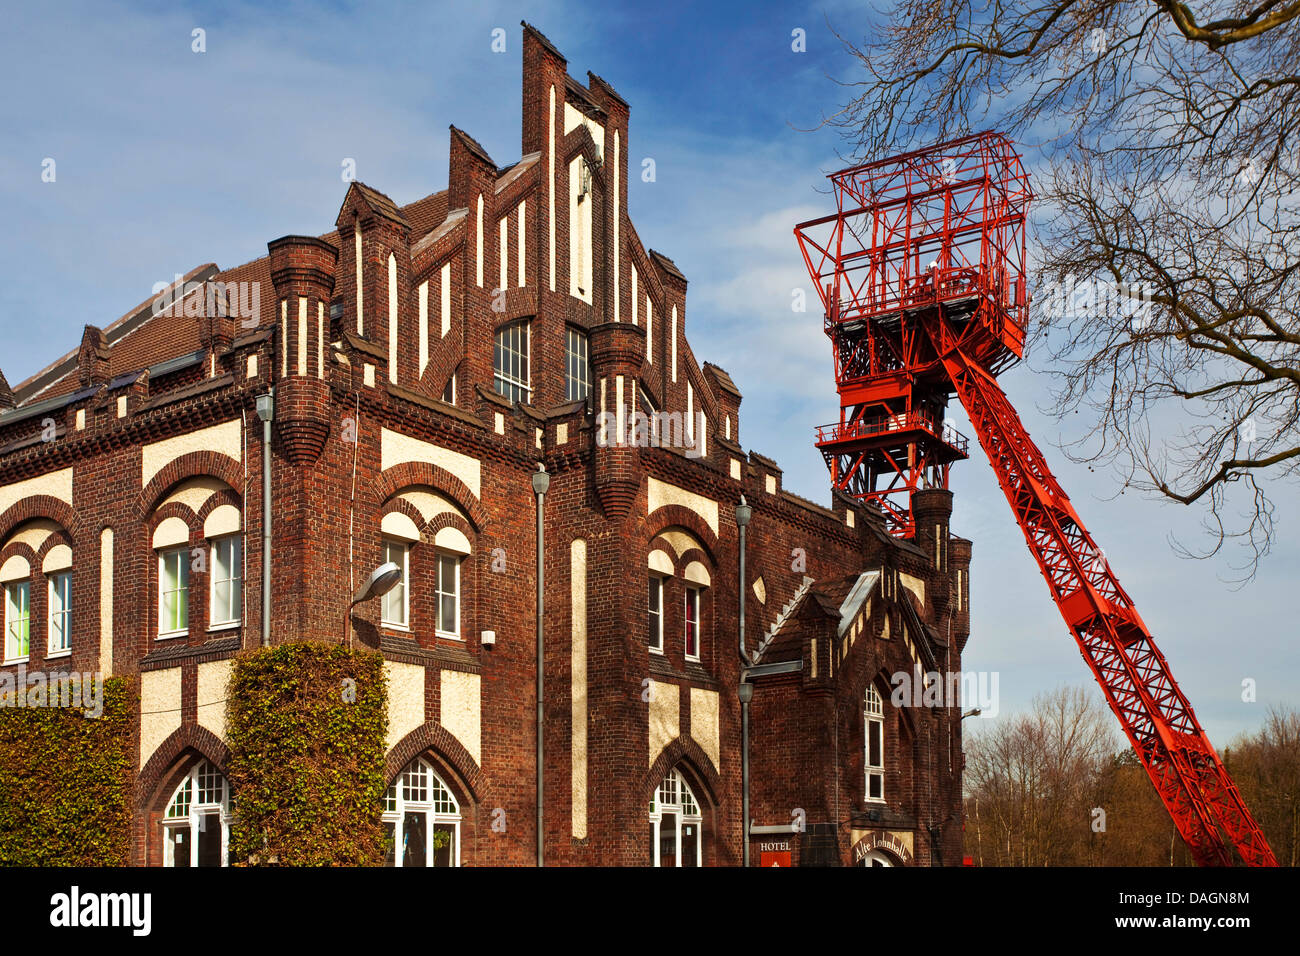 wages hall and shaft tower of the former coal mine Bonifacius, Germany, North Rhine-Westphalia, Ruhr Area, Essen - Stock Image